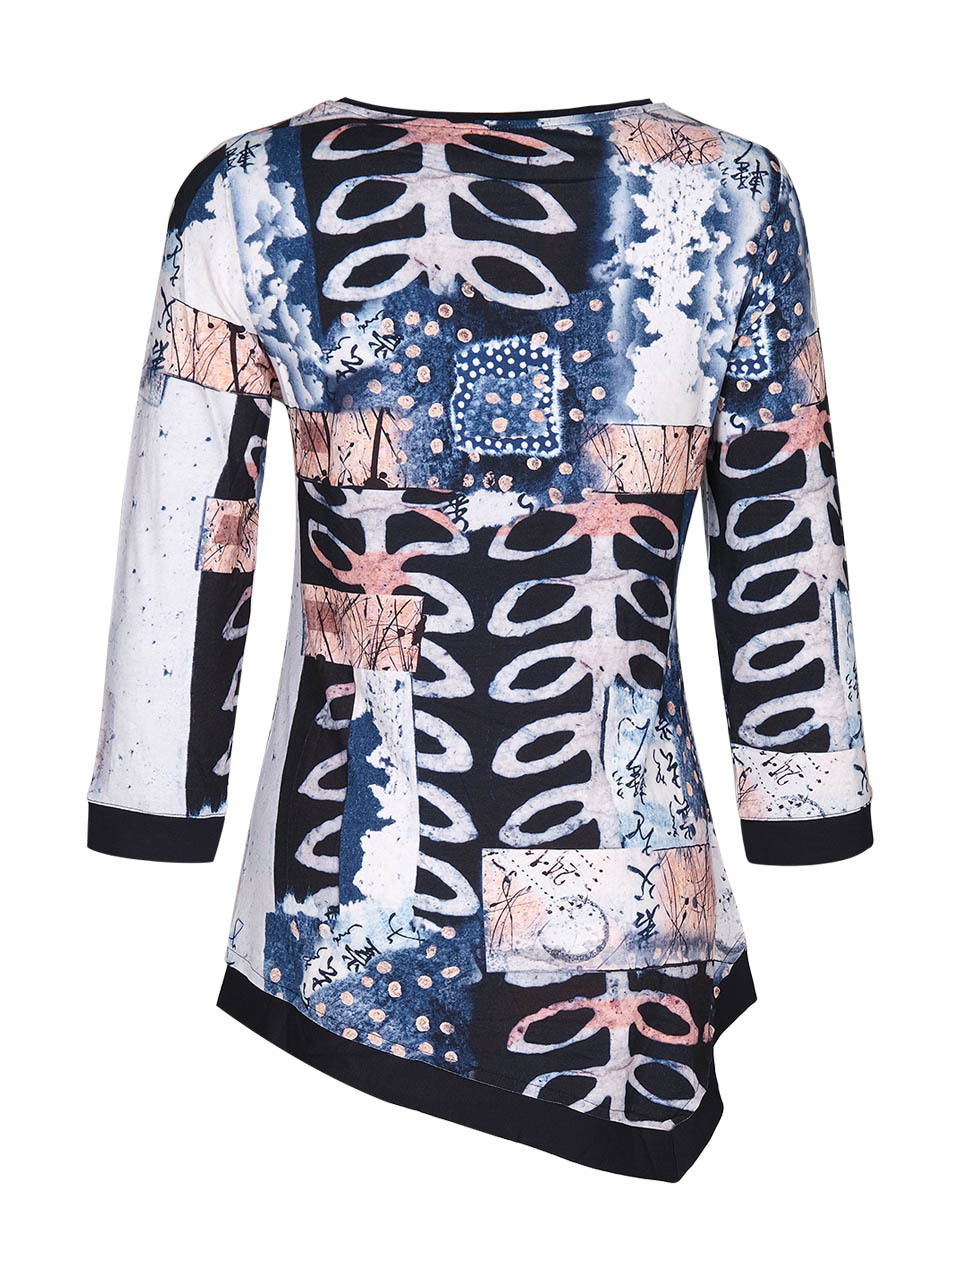 Simply Art Dolcezza: Papers In Color Asymmetrical Art Tunic (Few Left!)